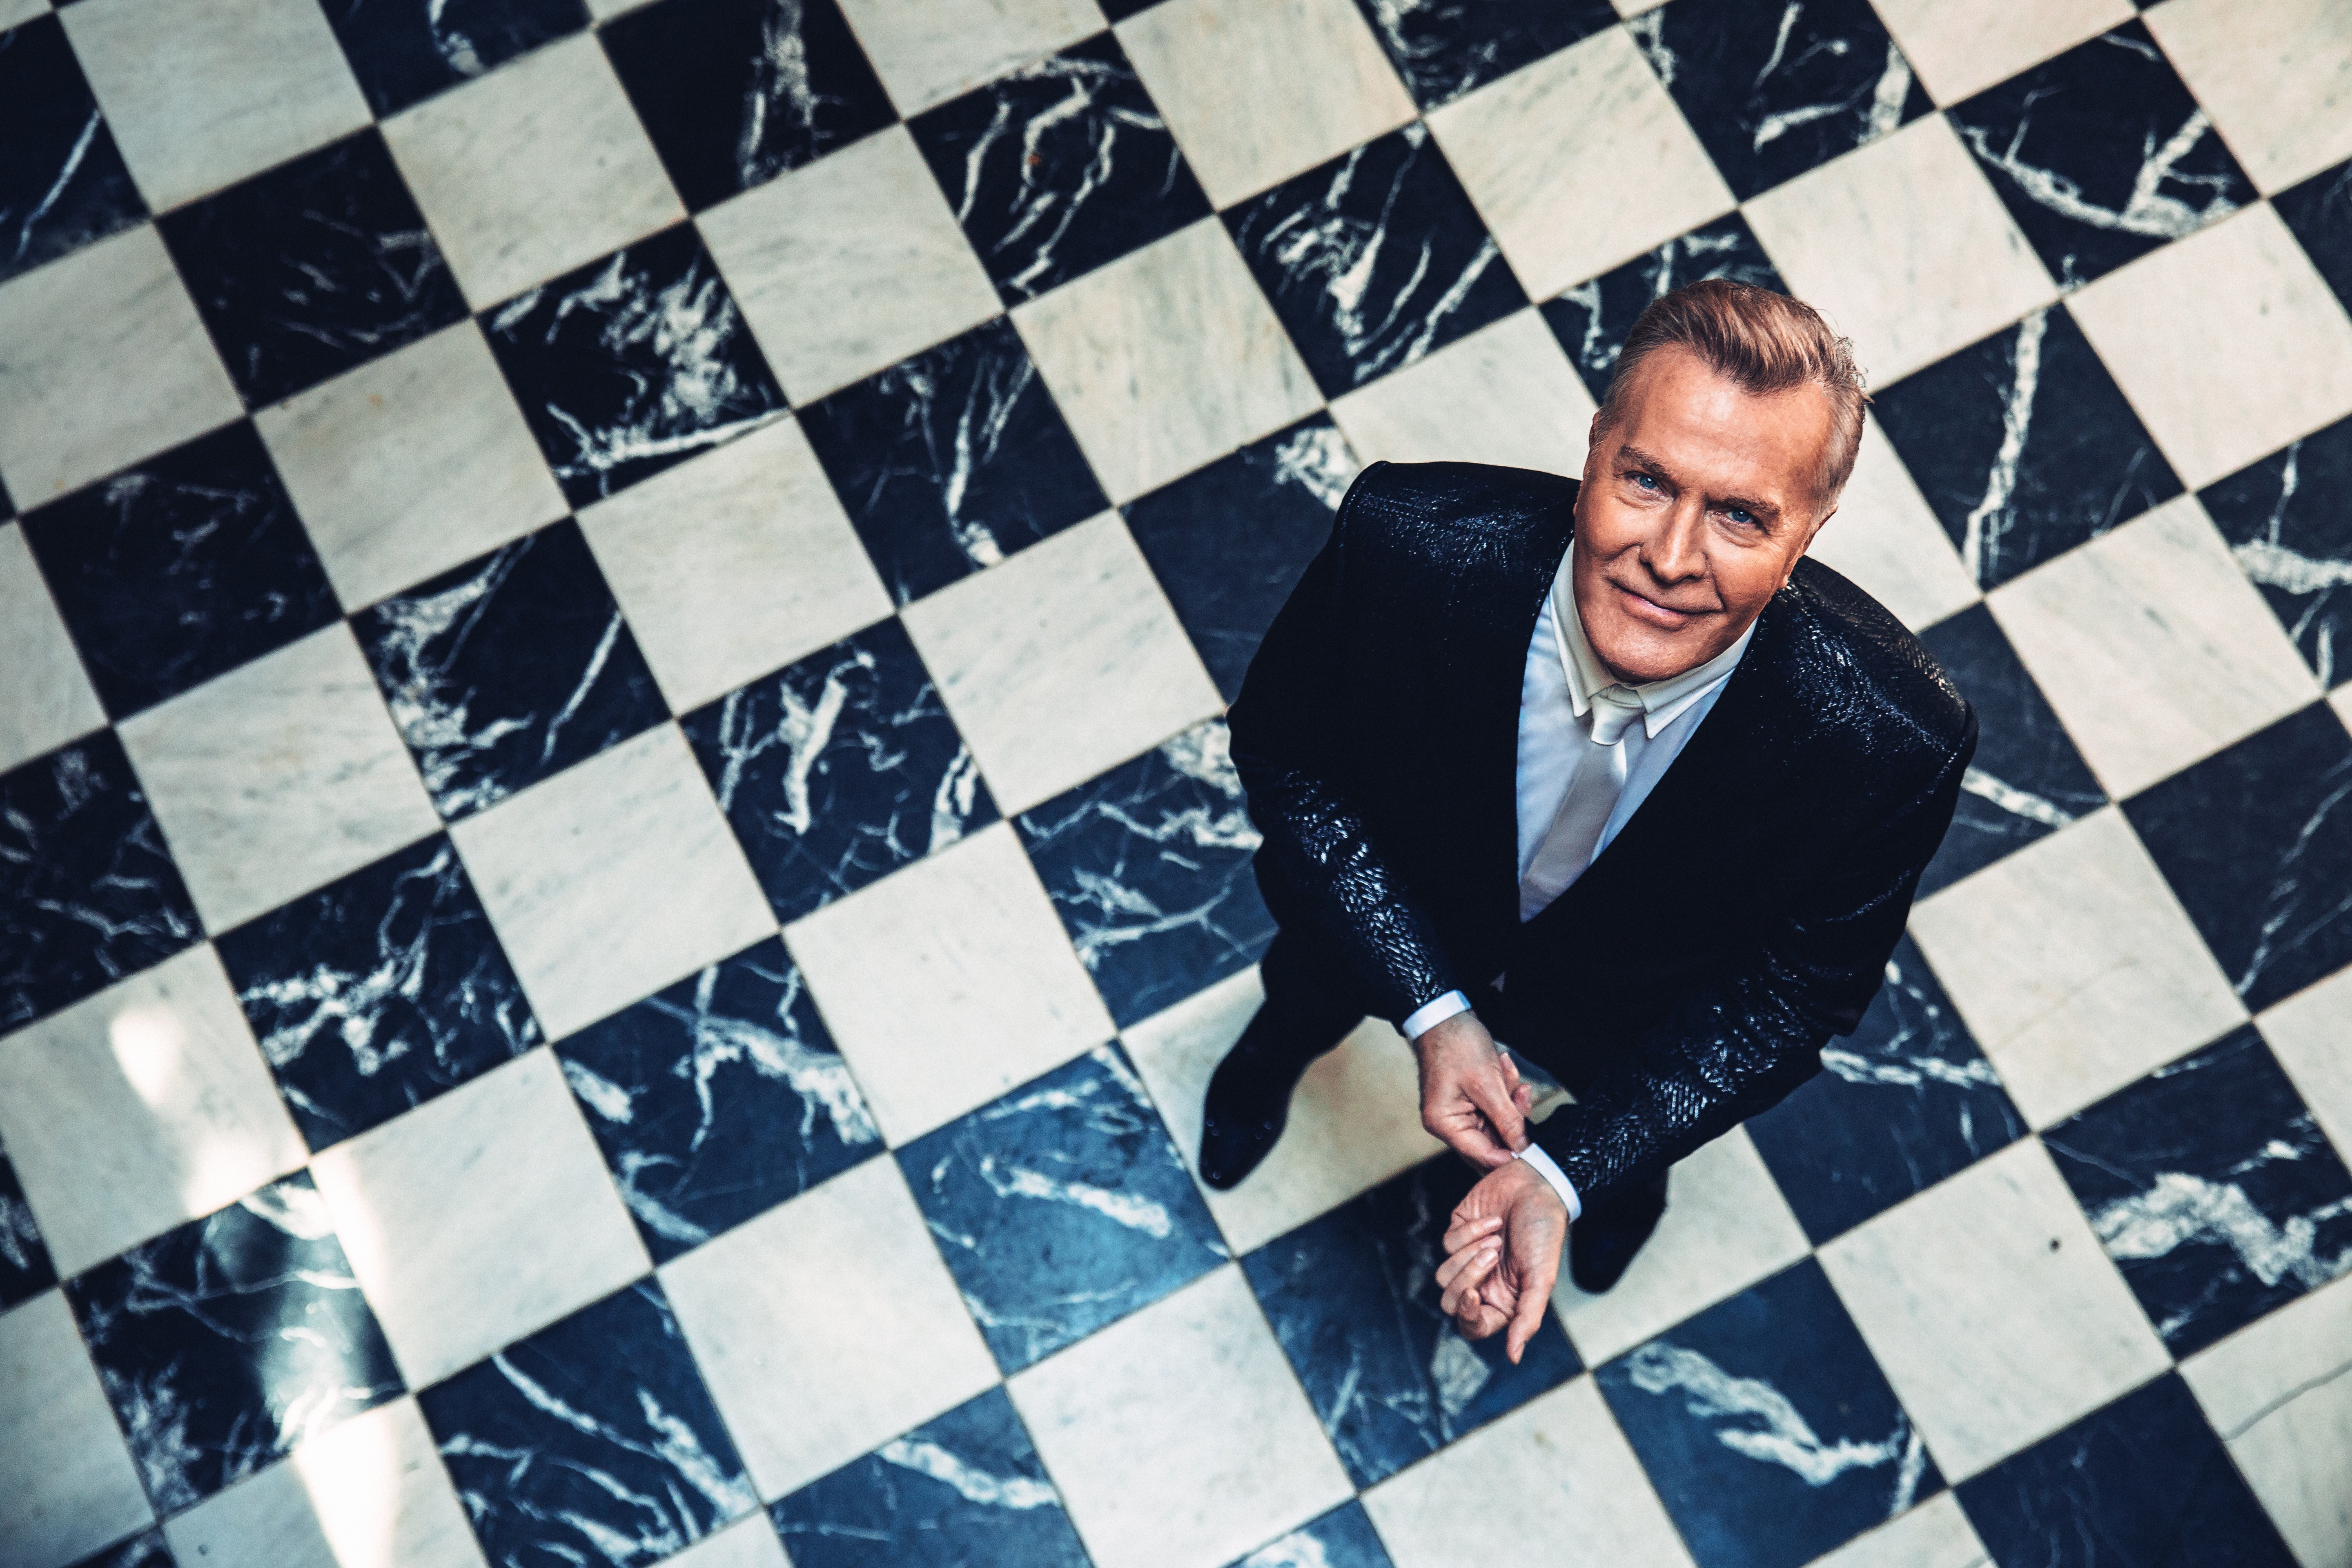 Martin Fry Who Performs This Week At Hard Rock Live As Part Of The